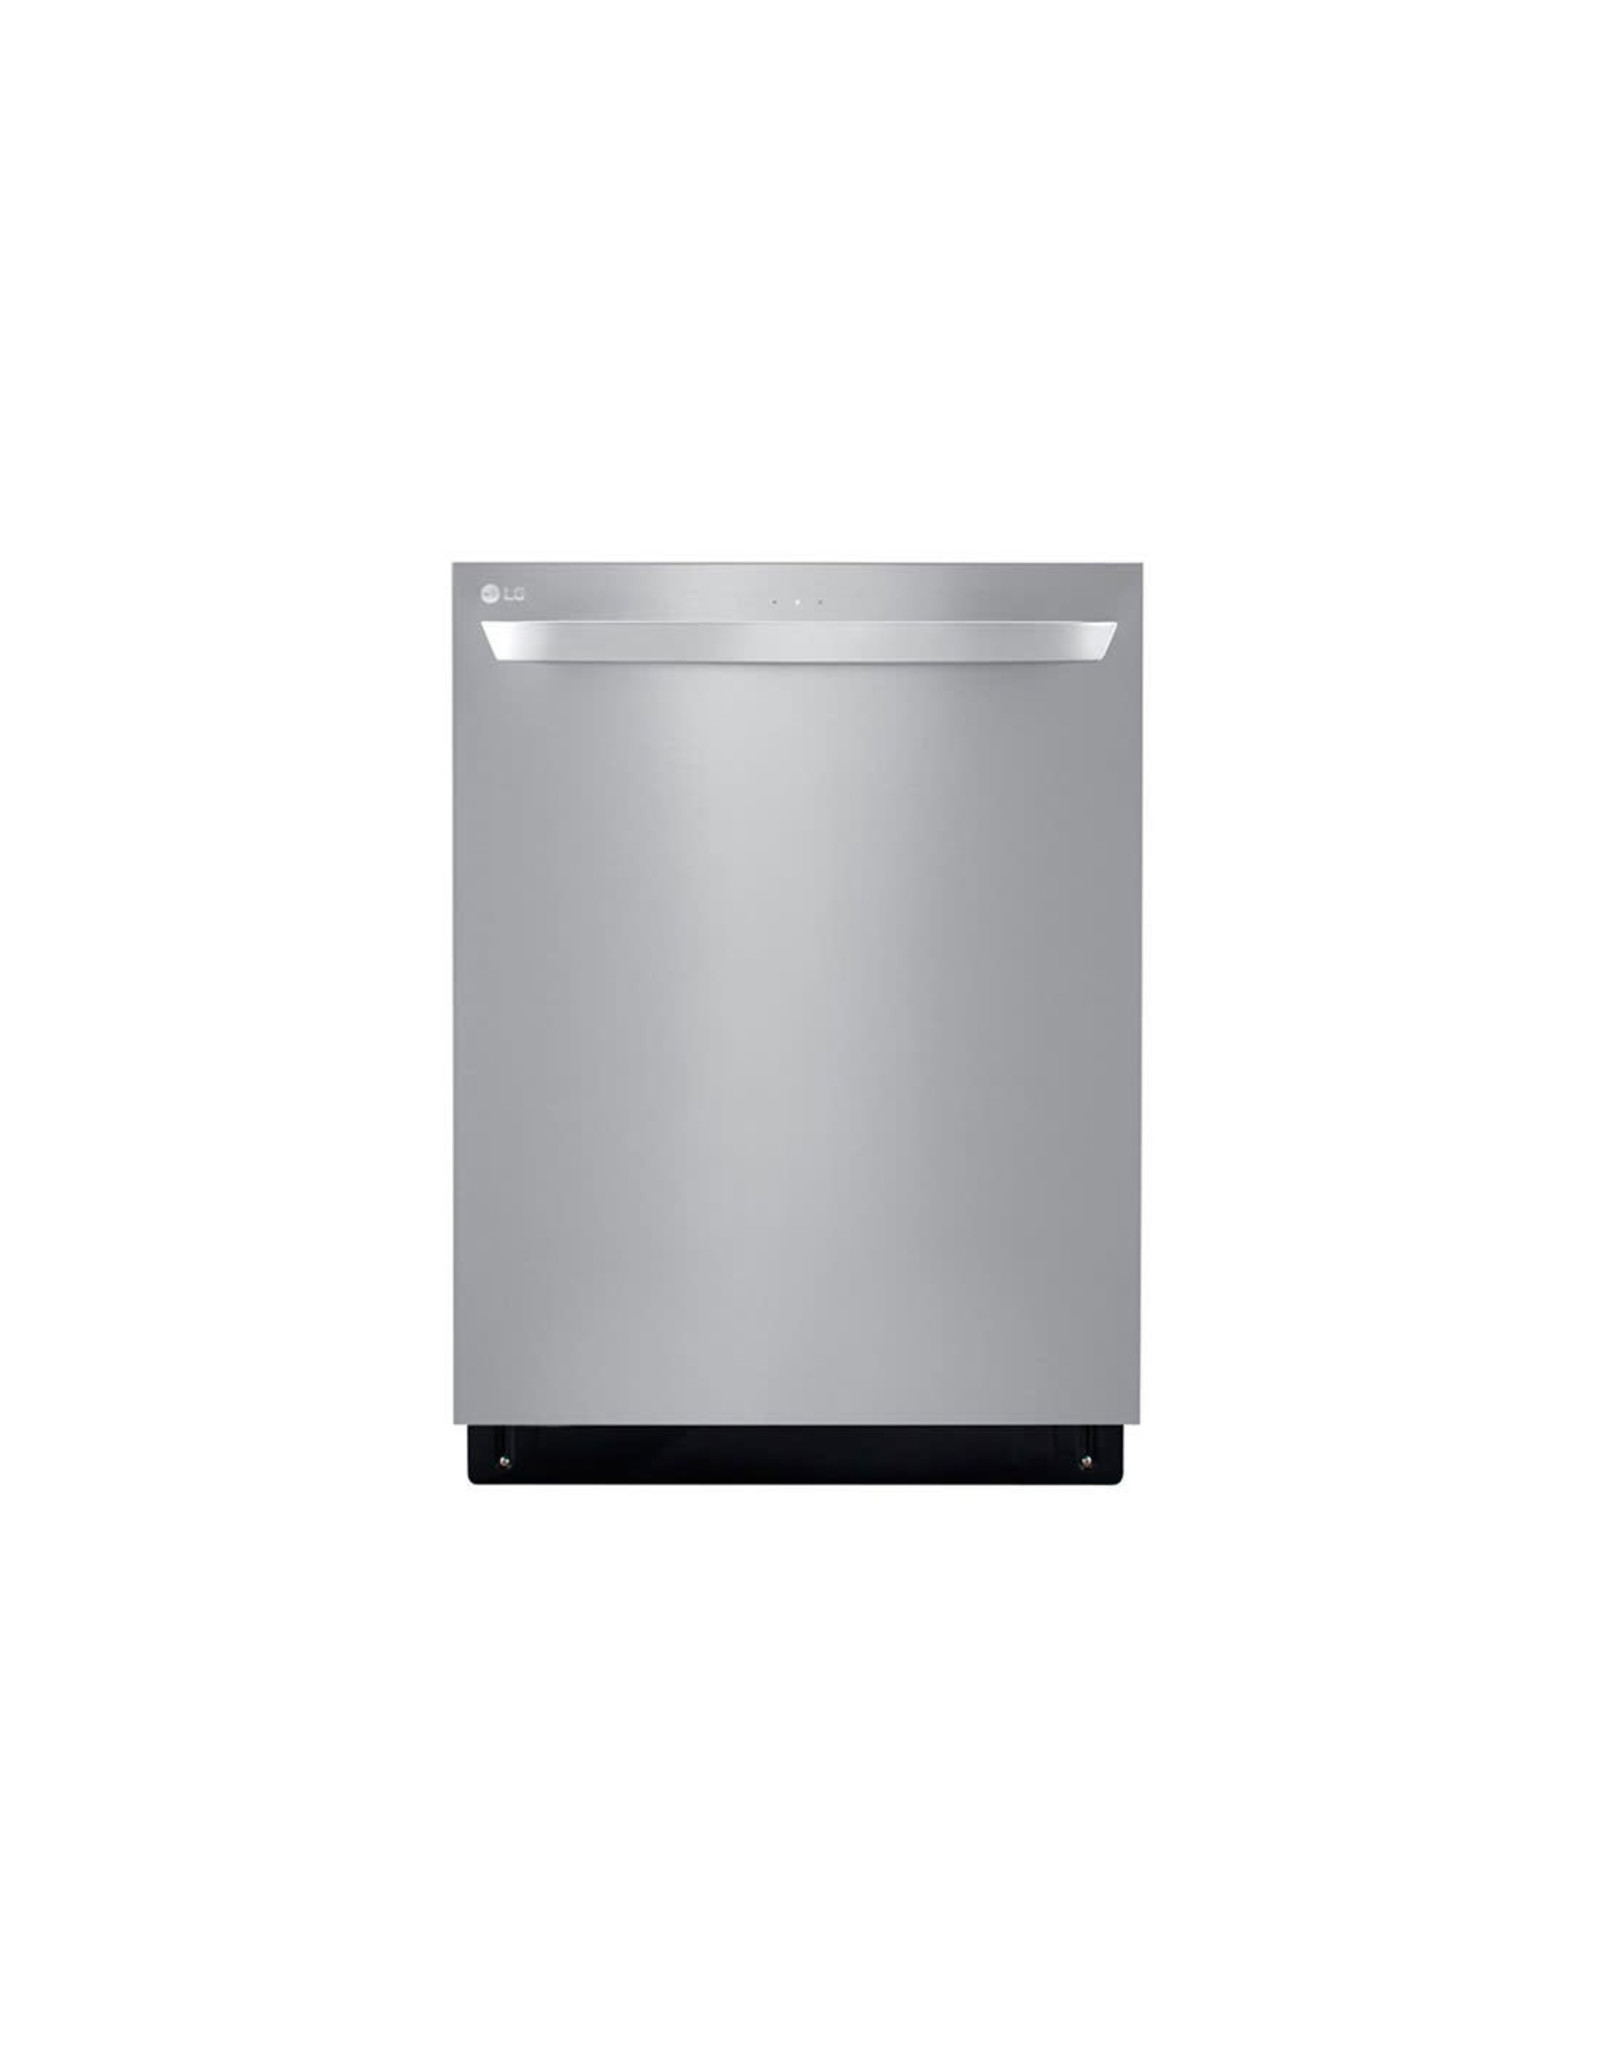 LG Electronics LDT5678SS Top control Dishwasher in PrintProof Stainless Steel with QuadWash, 3rd Rack, Wi-Fi Enabled, and EasyRack Plus, 46dBA